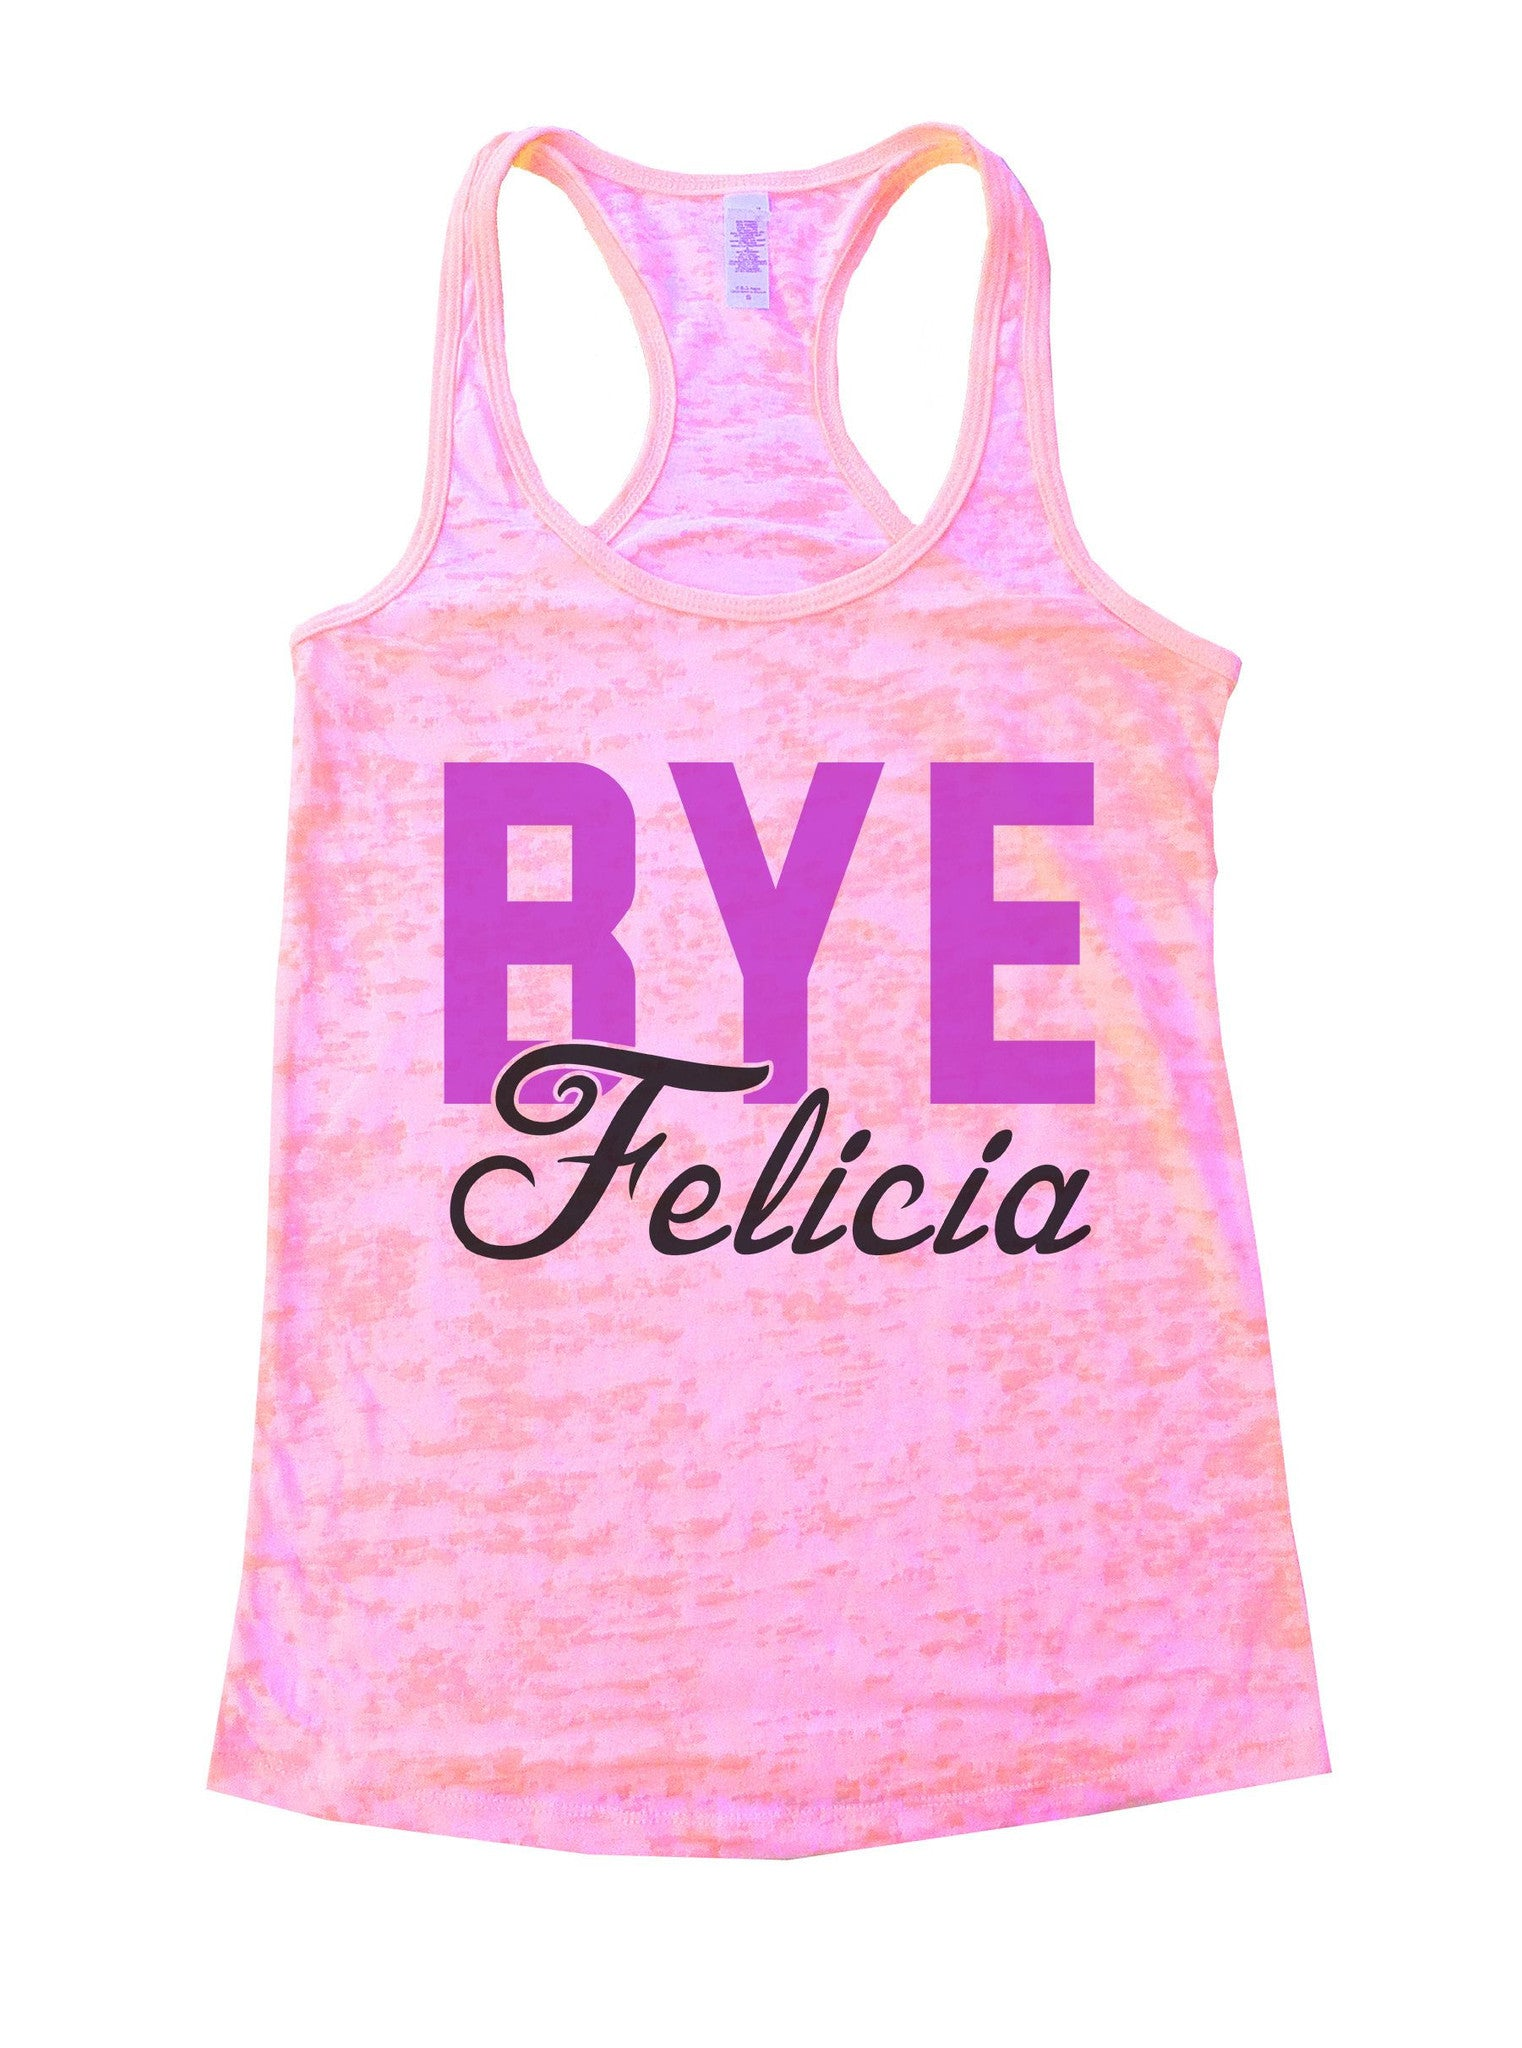 Bye Felicia Burnout Tank Top By BurnoutTankTops.com - 1092 - Funny Shirts Tank Tops Burnouts and Triblends  - 2